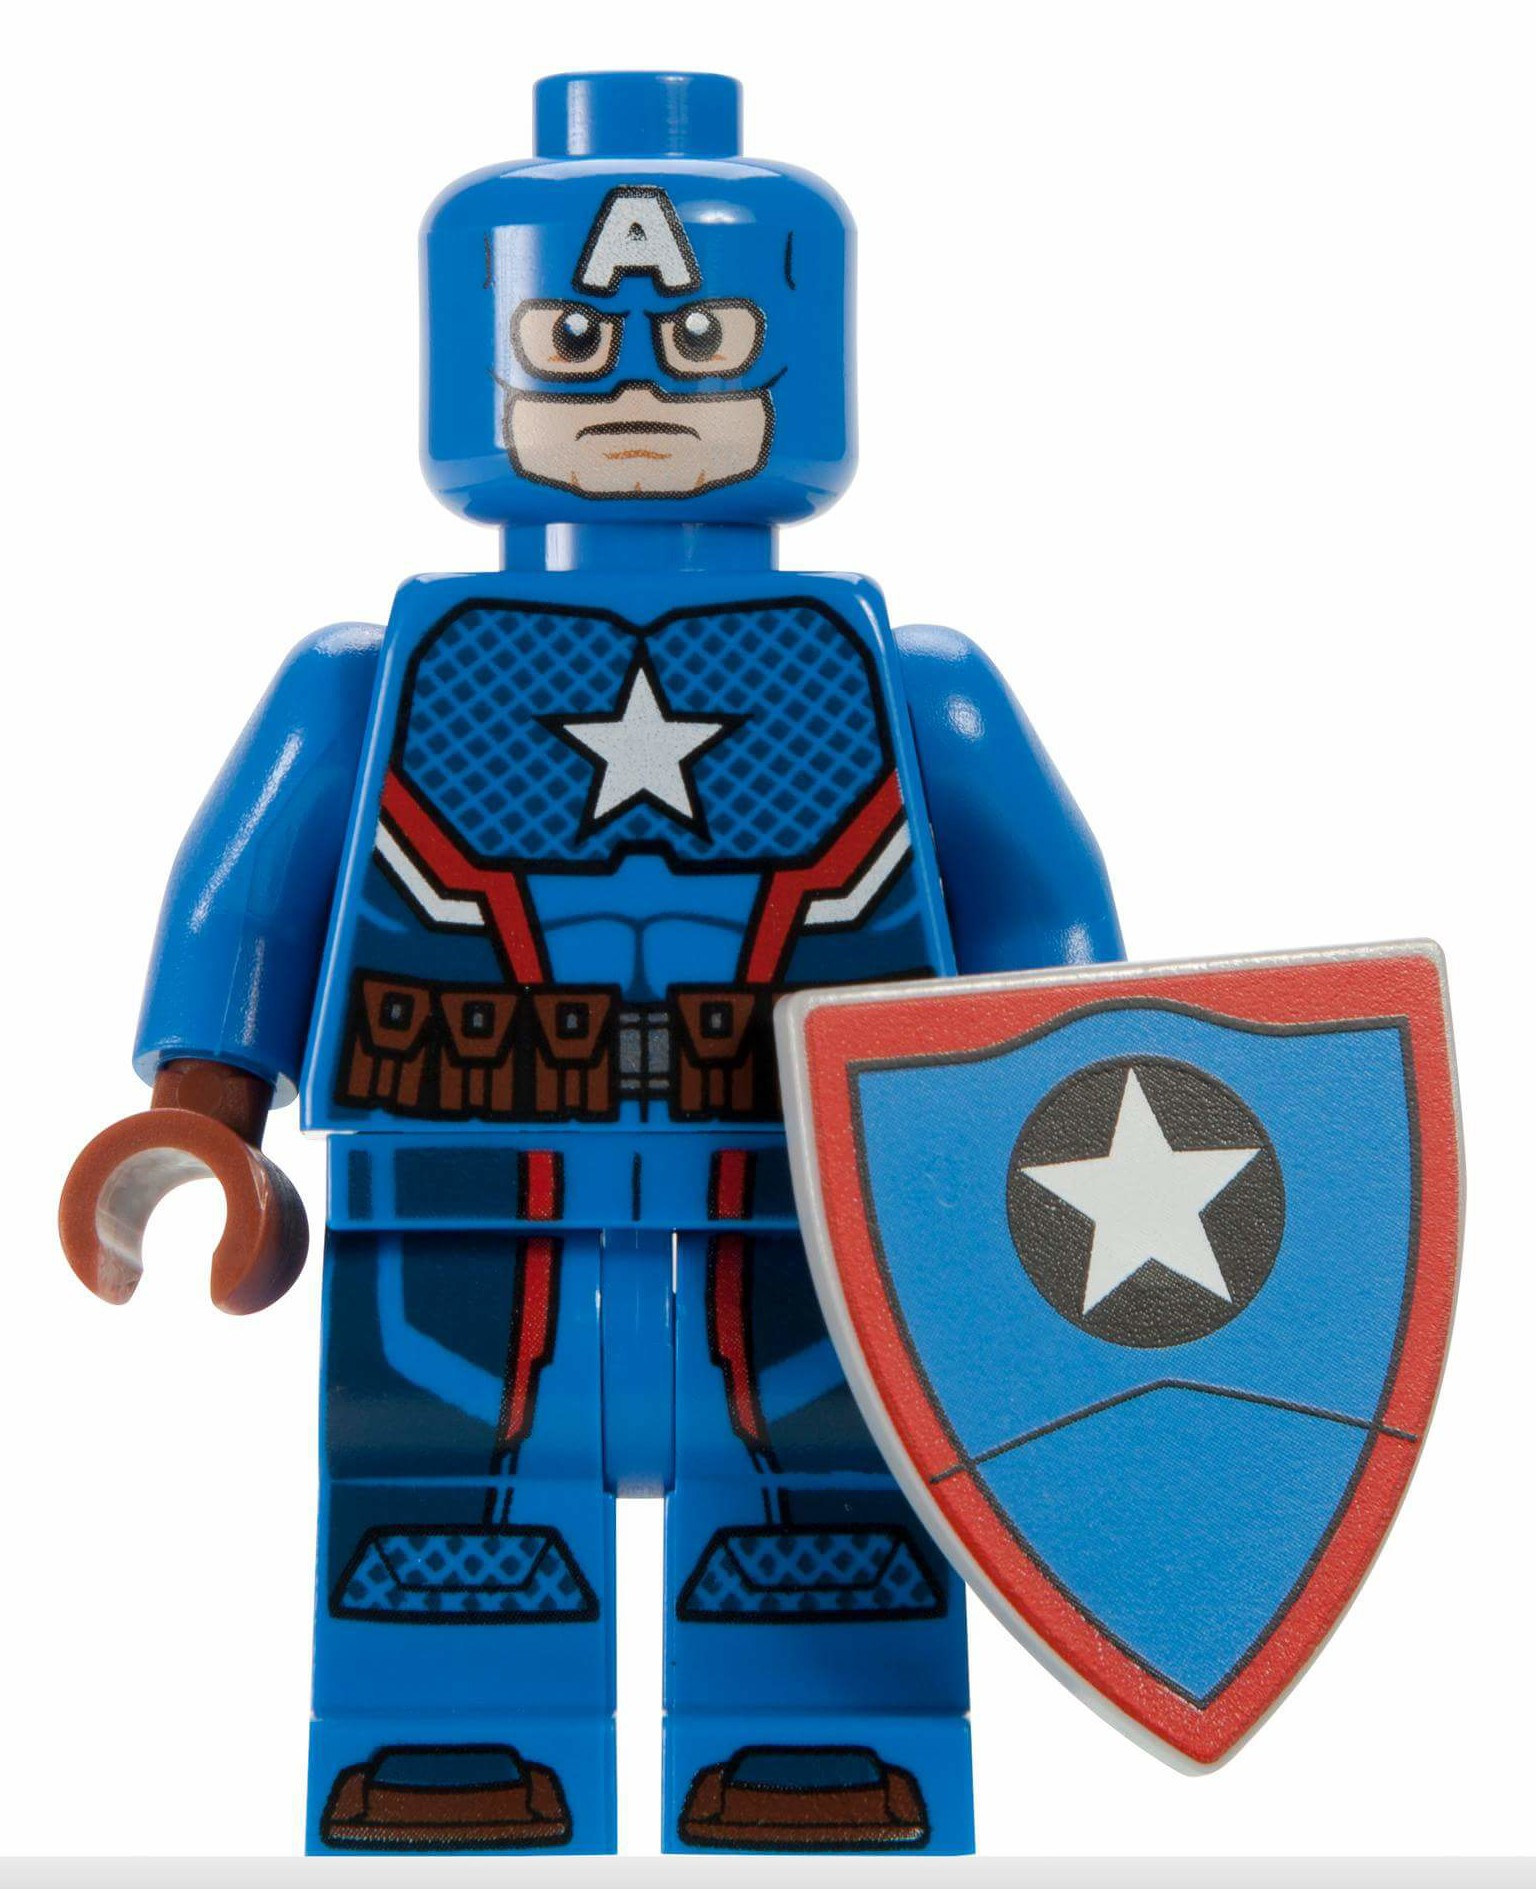 Sdcc 2016 Exclusive Lego Hydra Captain America Figure Marvel Toy News